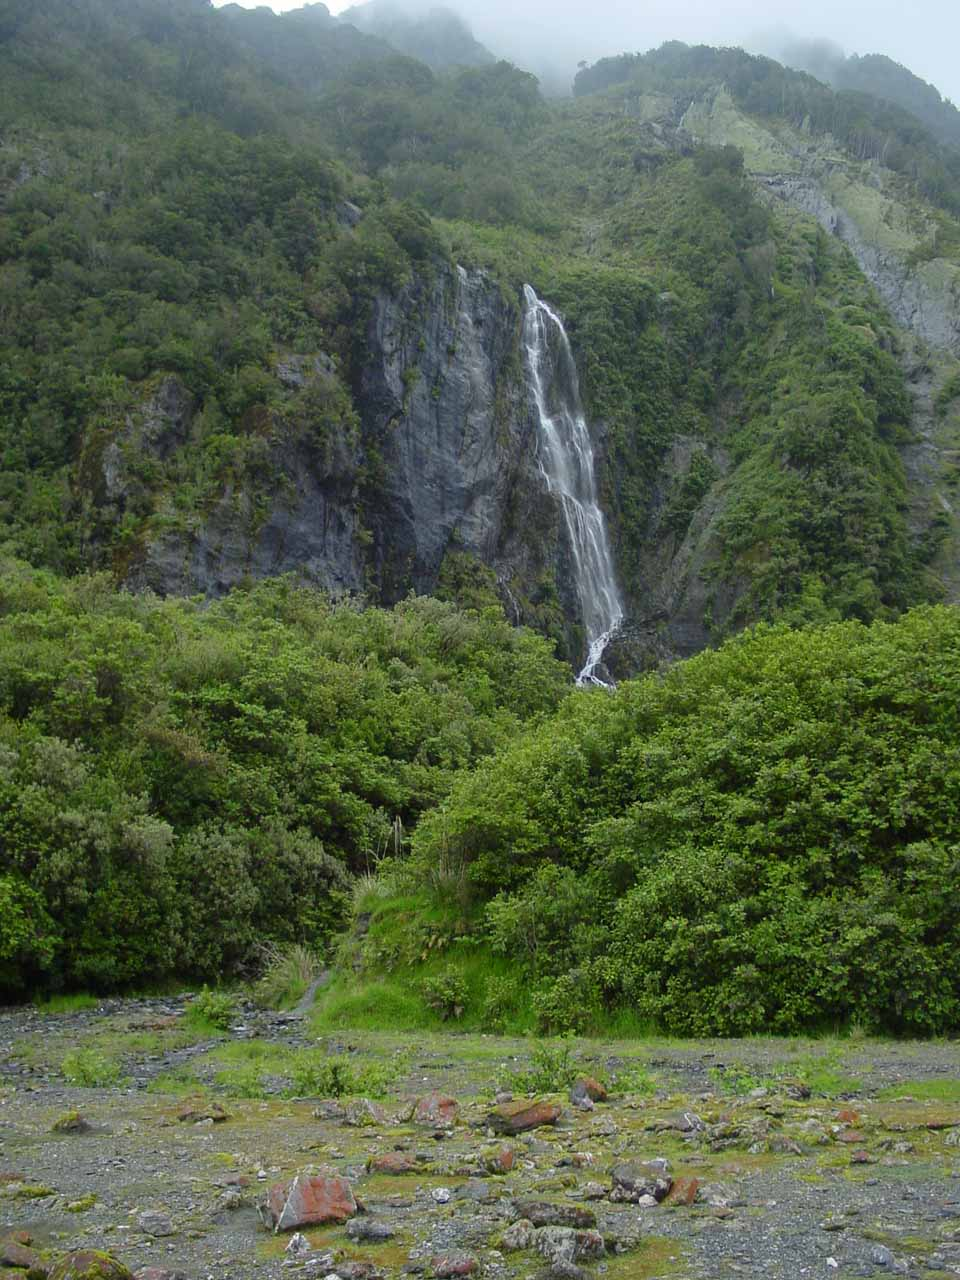 Looking towards one of the waterfalls seen early on in the valley of the Franz Josef Glacier